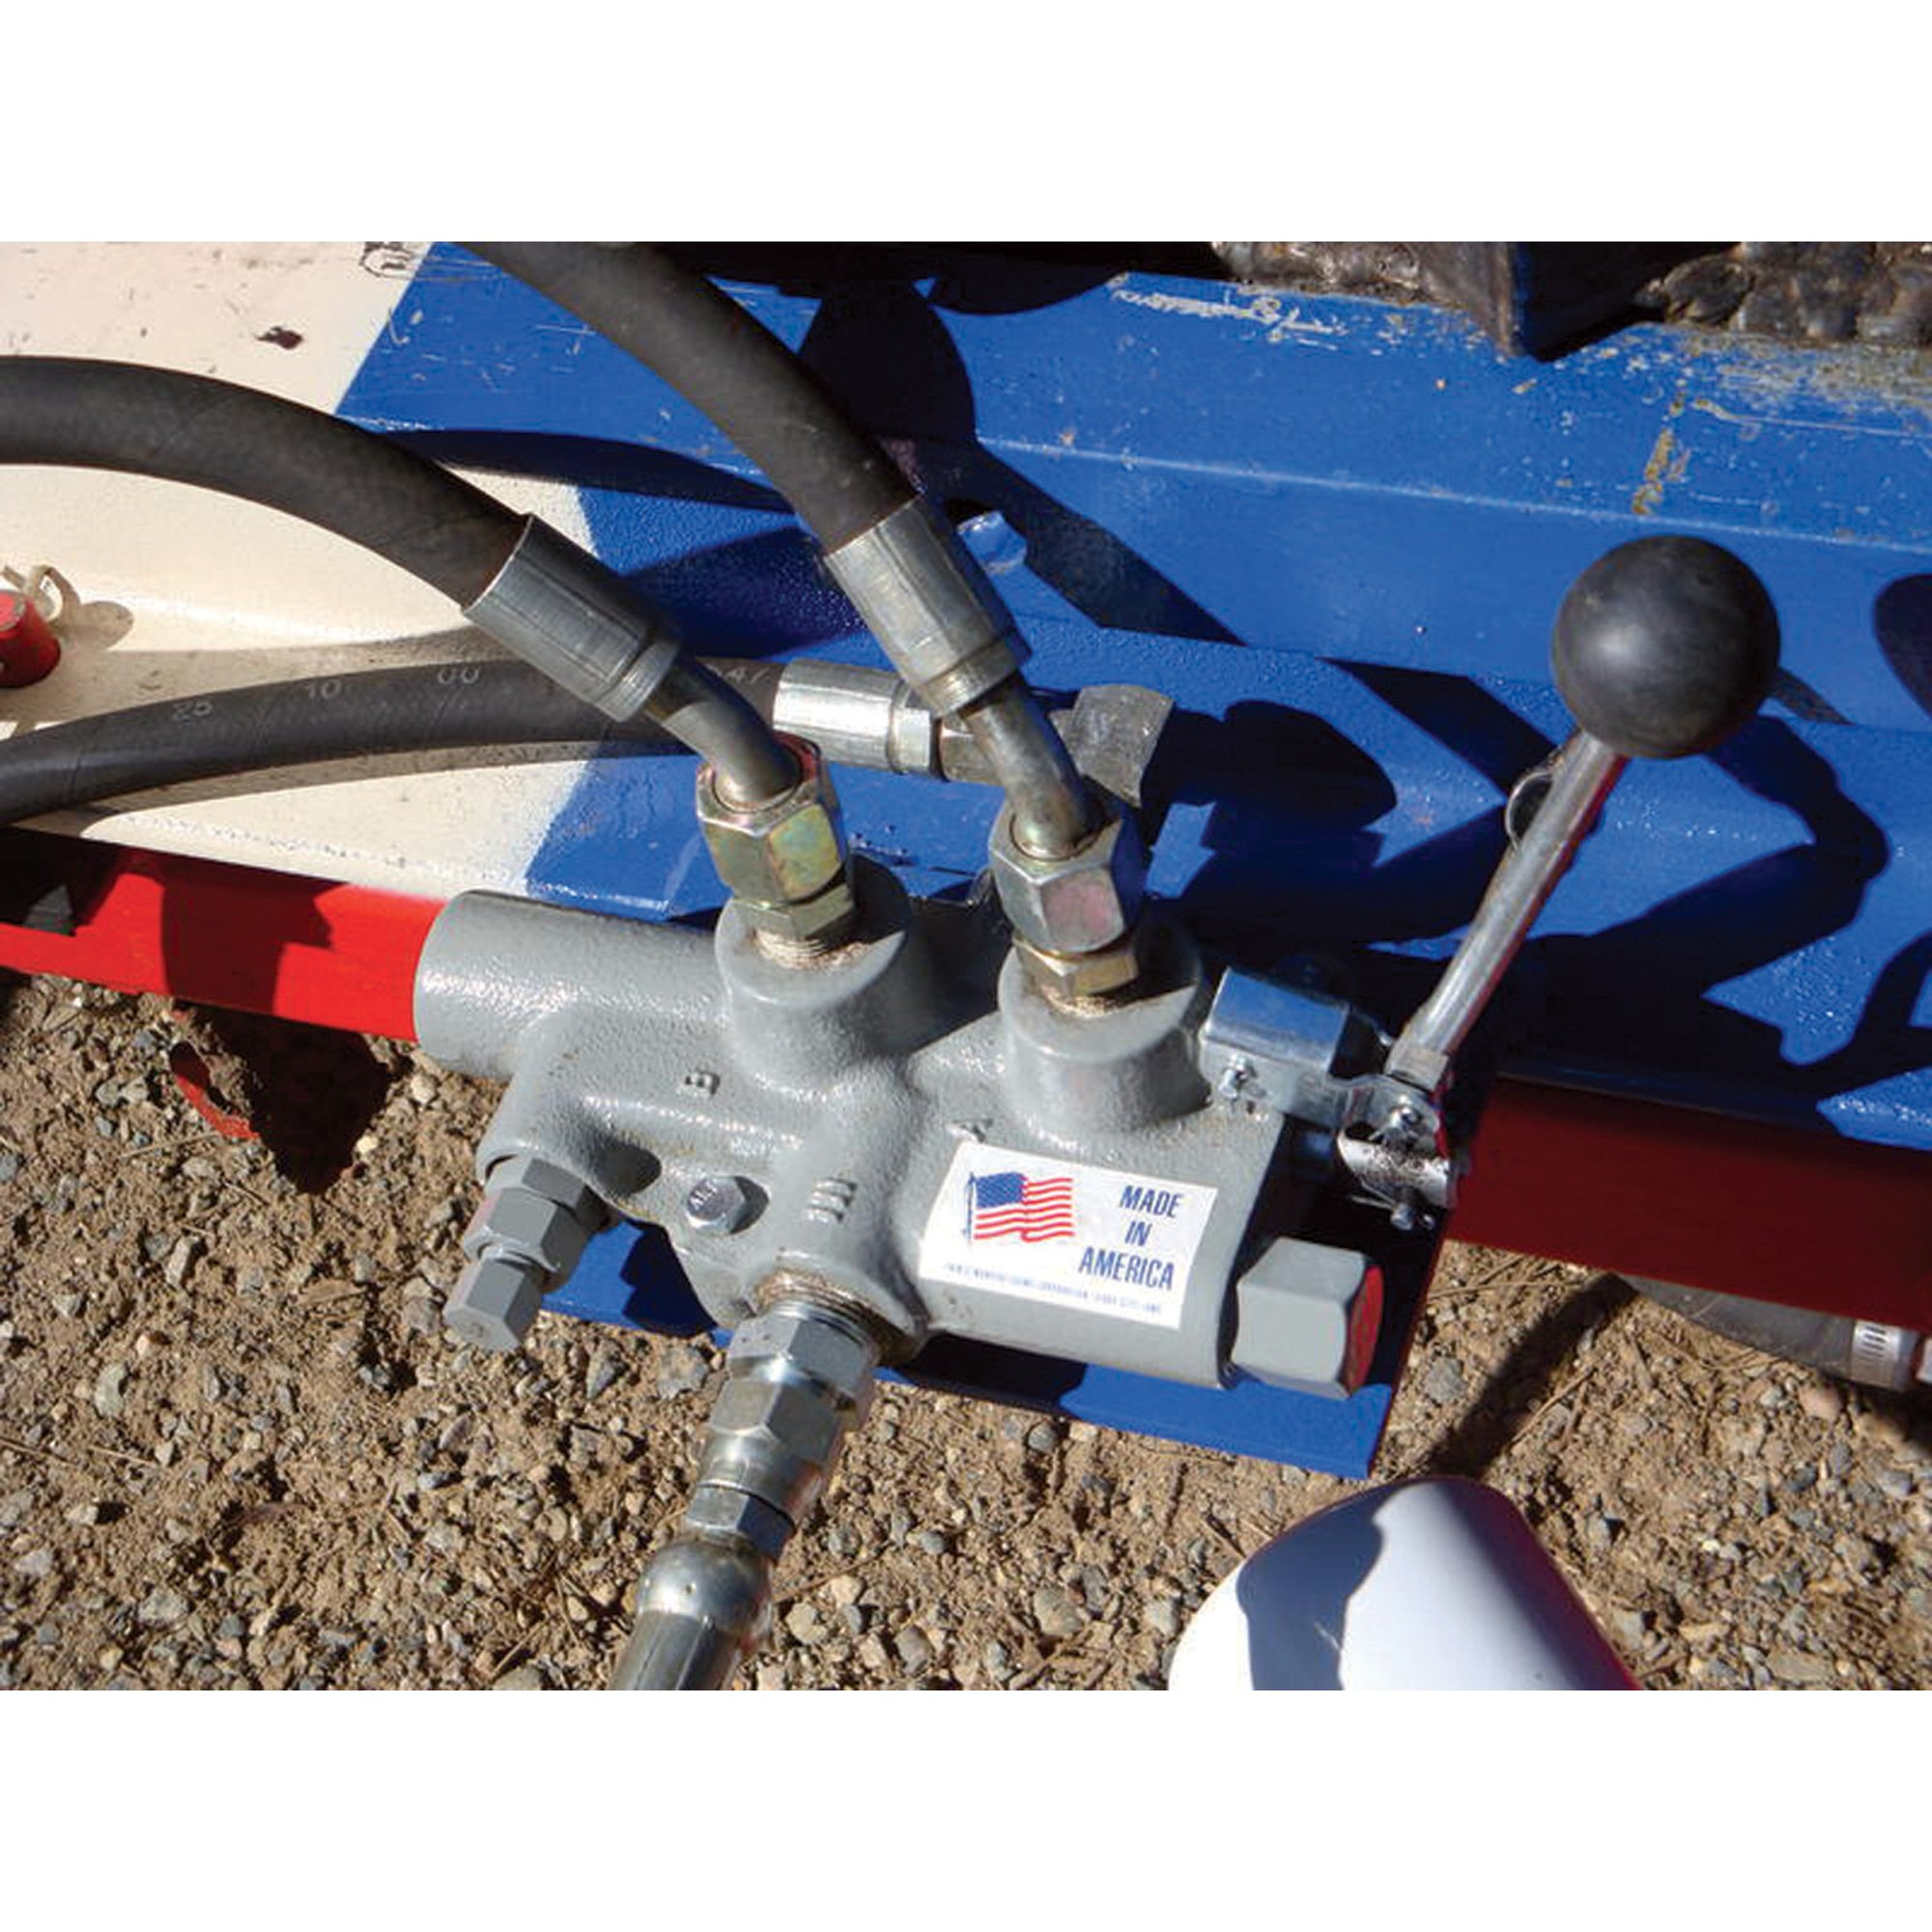 Prince LS-3000-2 Directional Control Valve, Logsplitter, 4 Ways, 3 Positions, Spring Center to Neutral, Cast Iron, 2750 psi, Lever Handle, 25 gpm, In/Out: 3/4'' NPTF, Work: 3/4'' NPTF